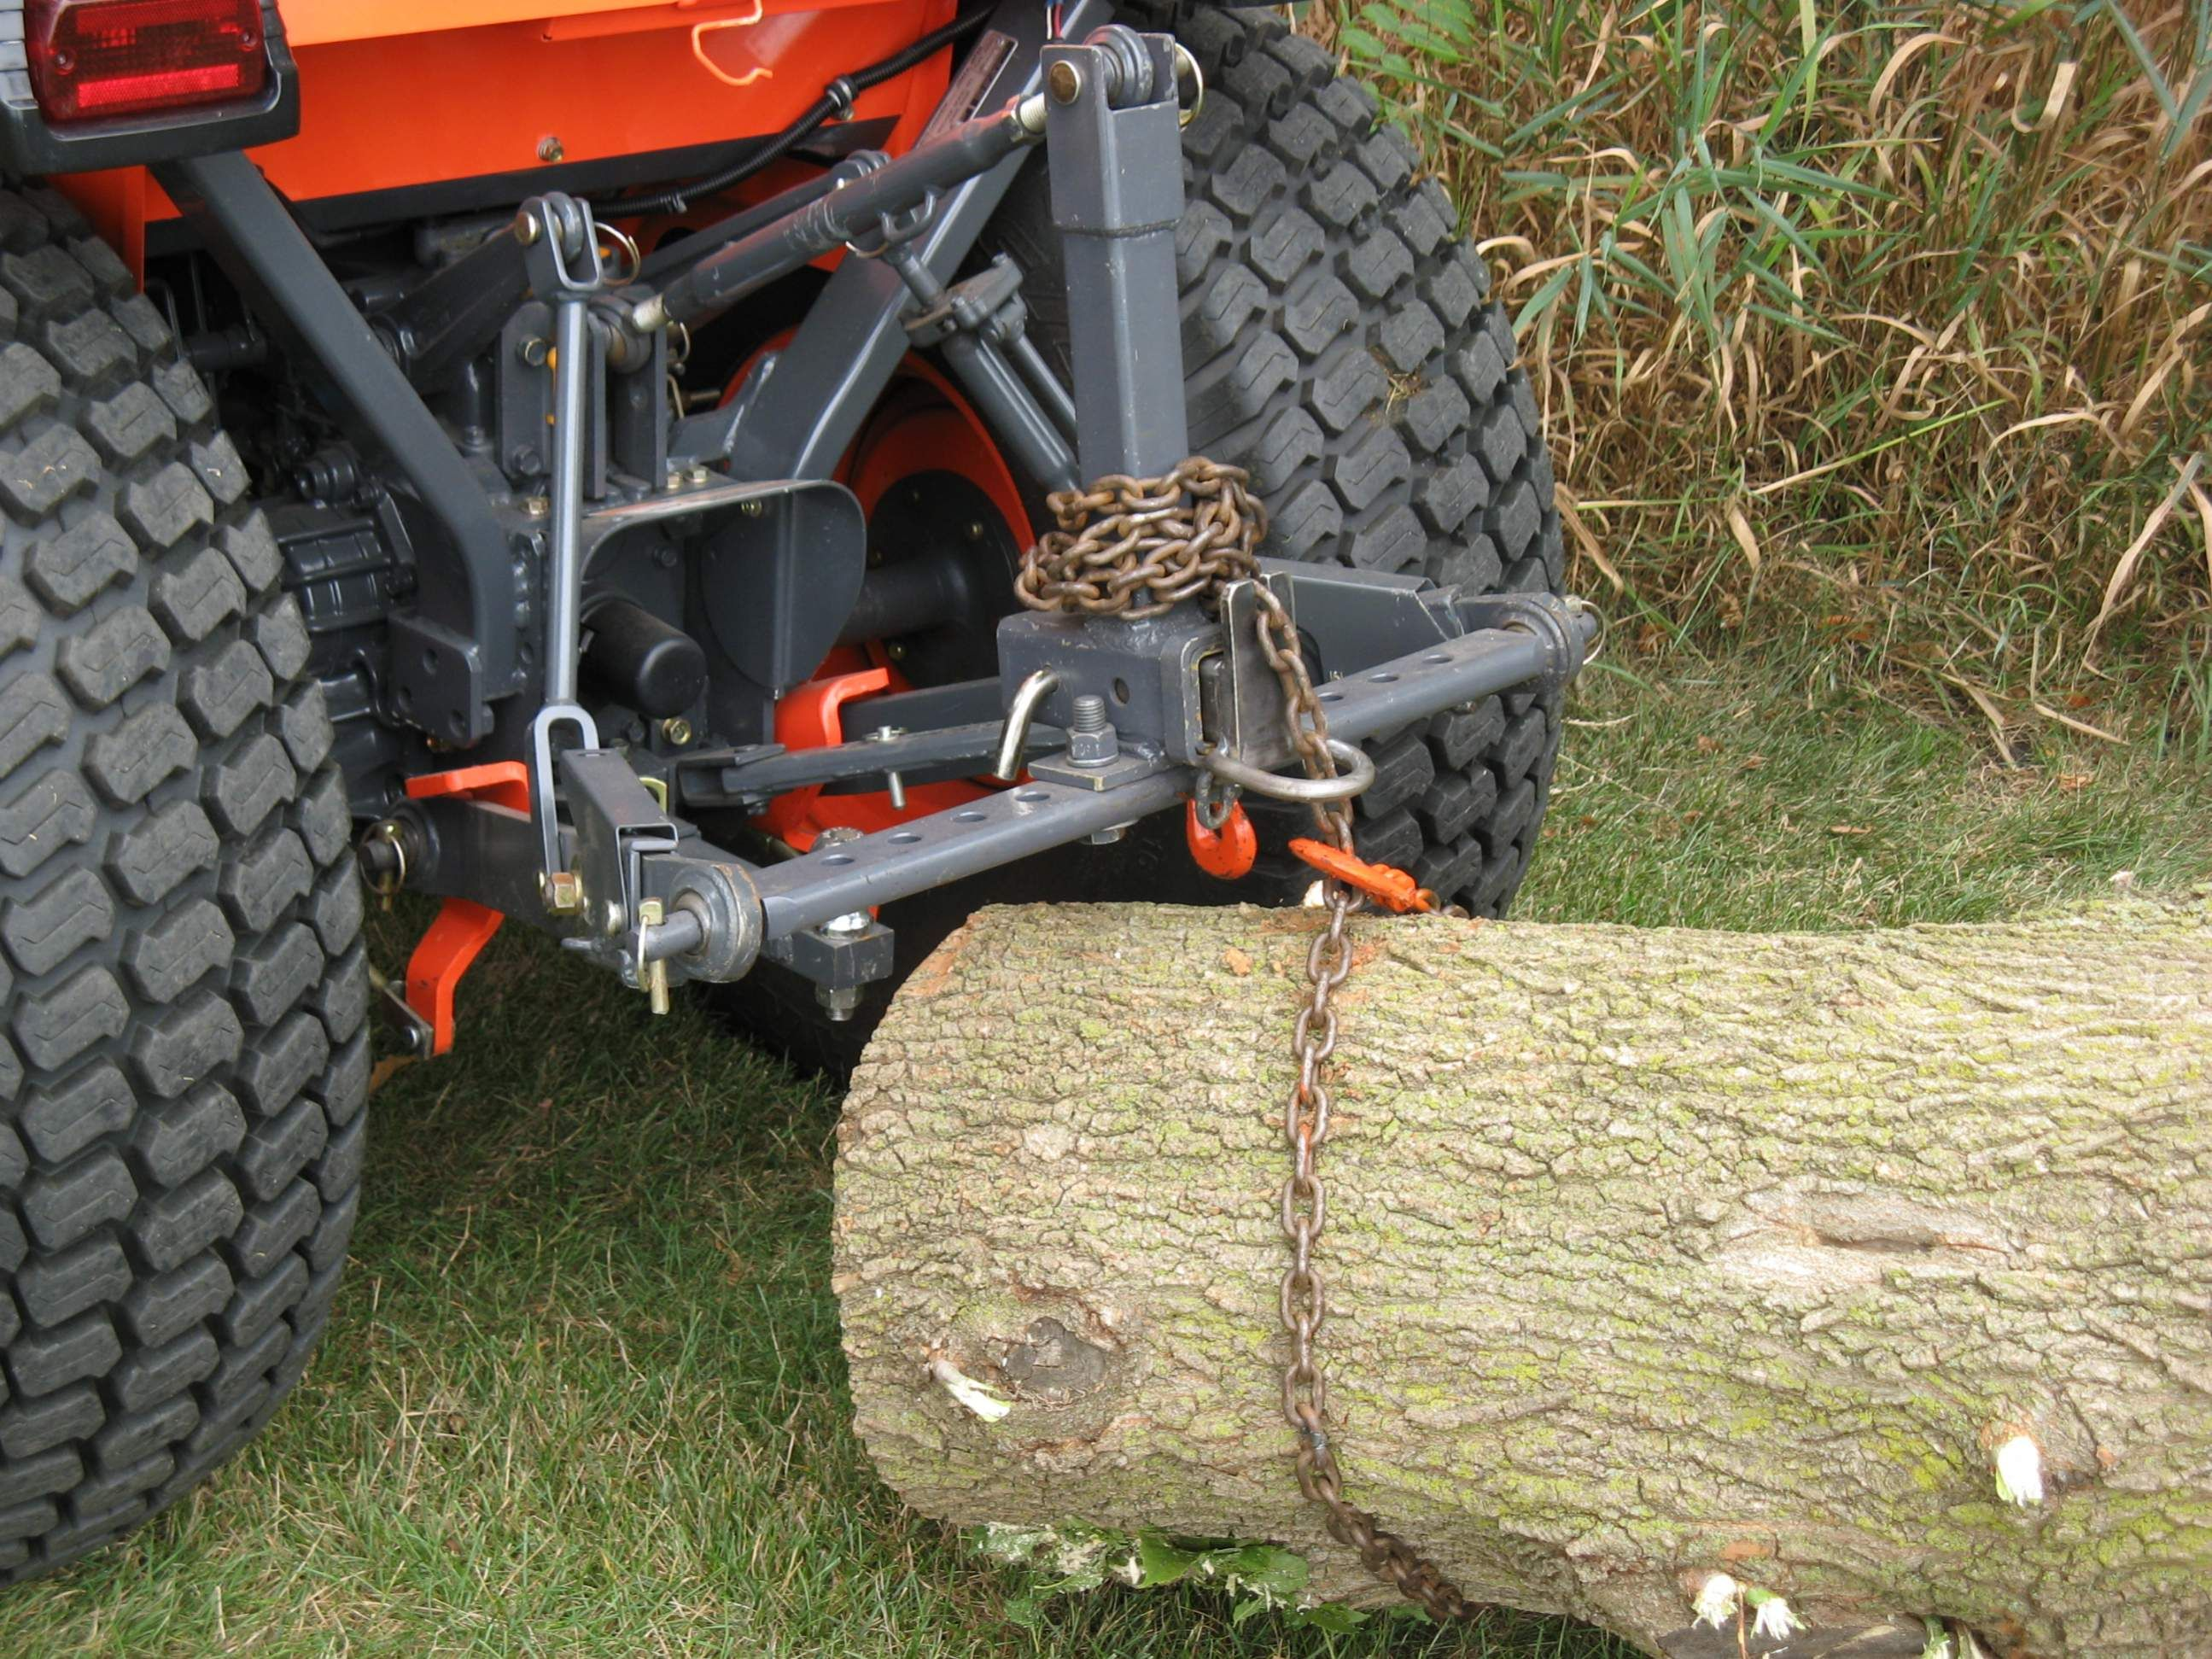 3 Point Hitch Scissor Lift : Tractorbynet forums files kubota owning operating